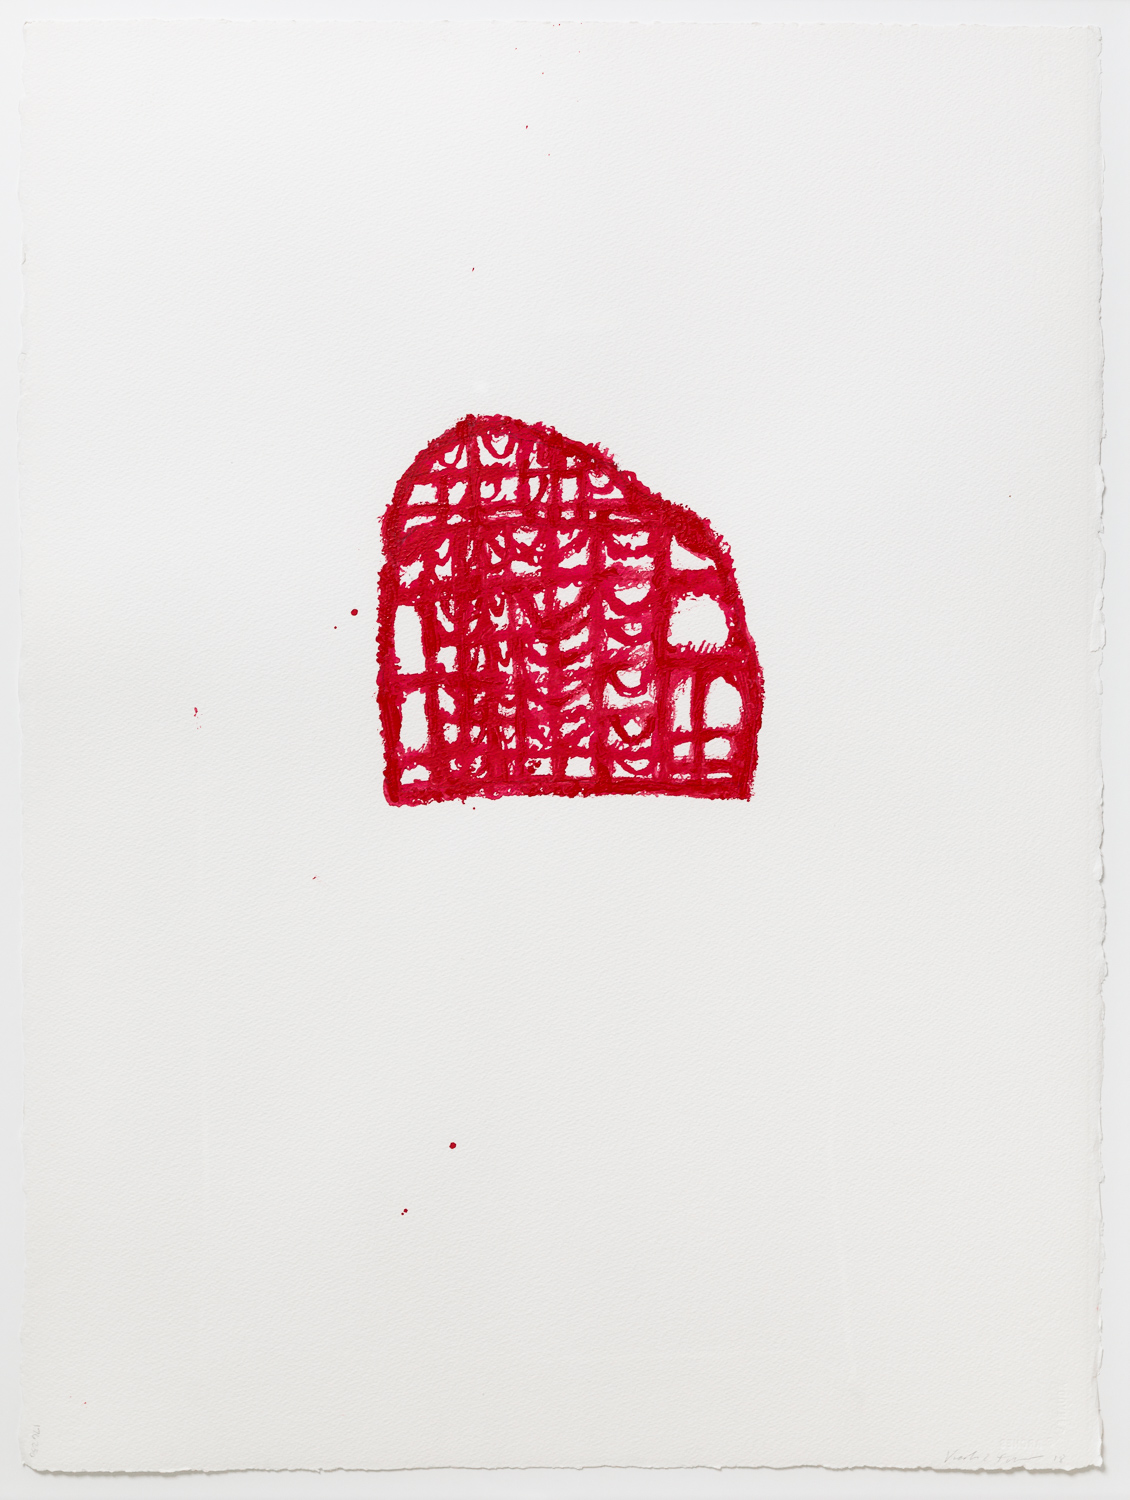 Red Gate Study, 33.75 x 36 inches, acrylic paint (marks made with fingers and a hairpin), 2018